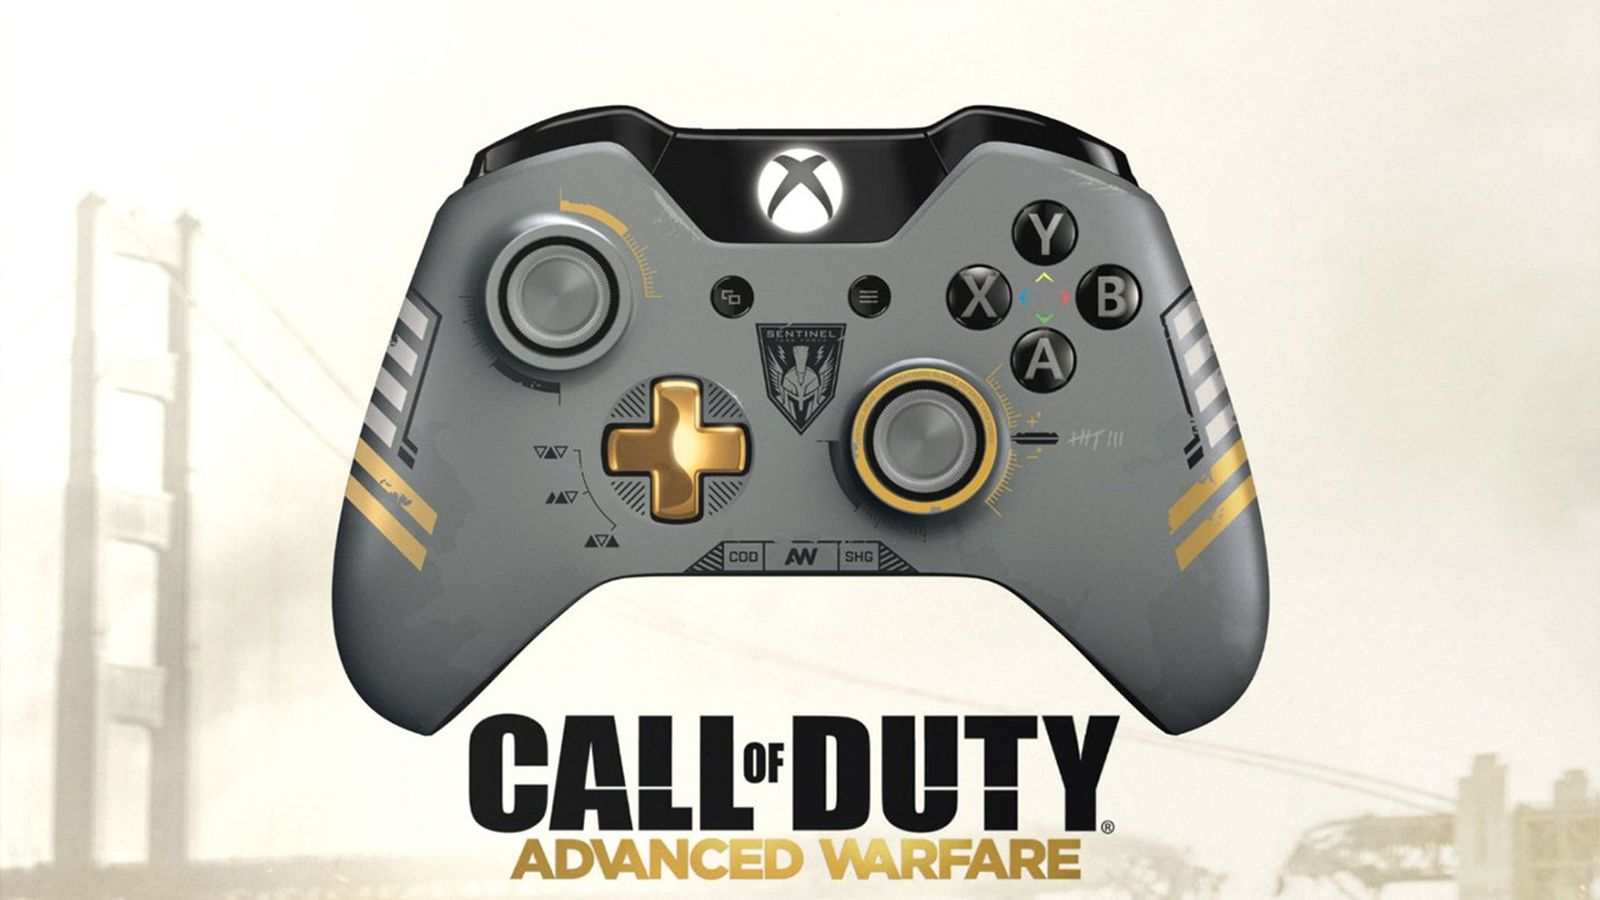 Call Of Duty Advanced Warfare Branded Xbox One Controller